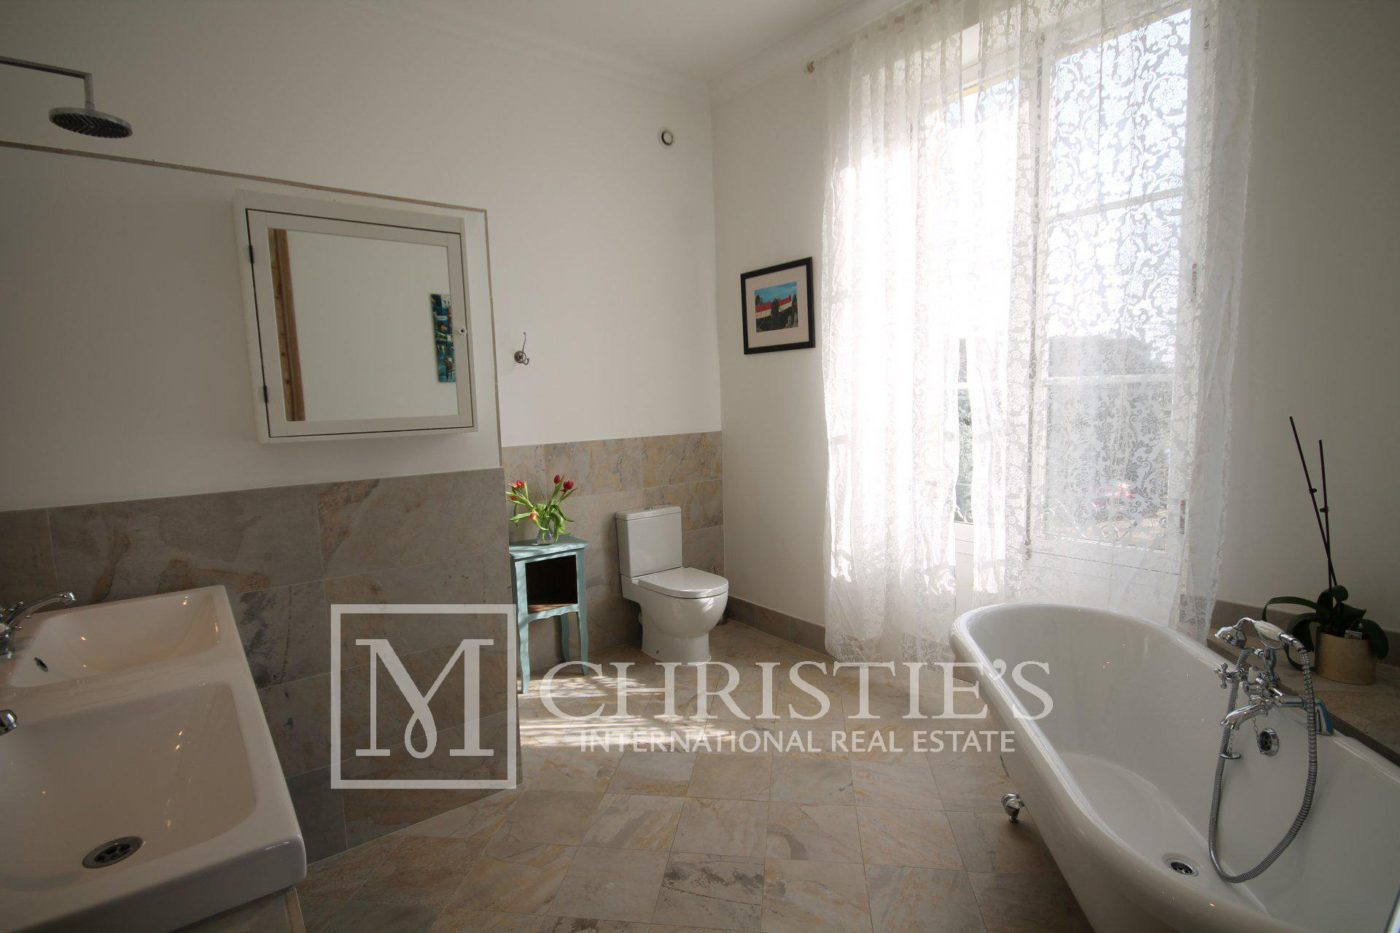 Bathroom, Tile - Country House/Chateau with Boutique Vineyard